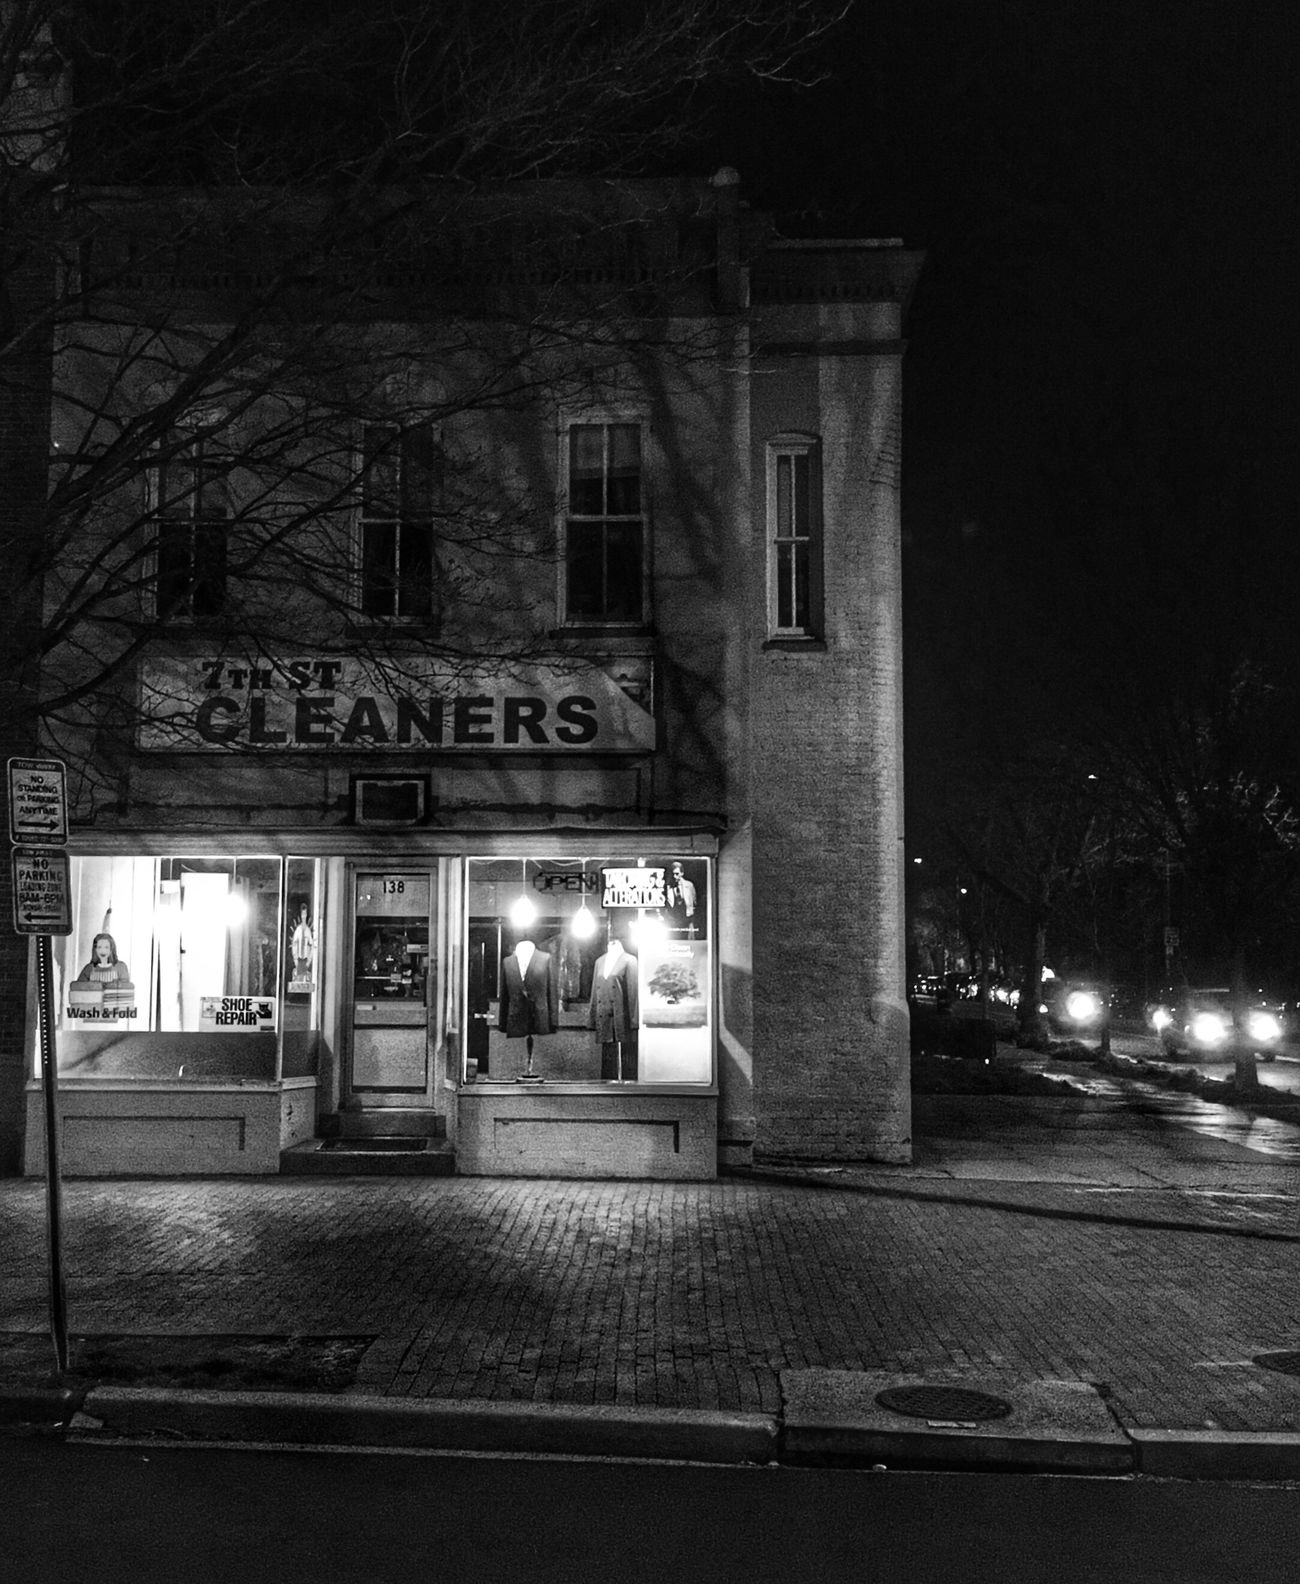 7th Strret Cleaners Streetphotography Architecture Night EyeEm Best Shots - Black + White Bw_collection From My Point Of View Streetphoto_bw Eye4photography  The City Light